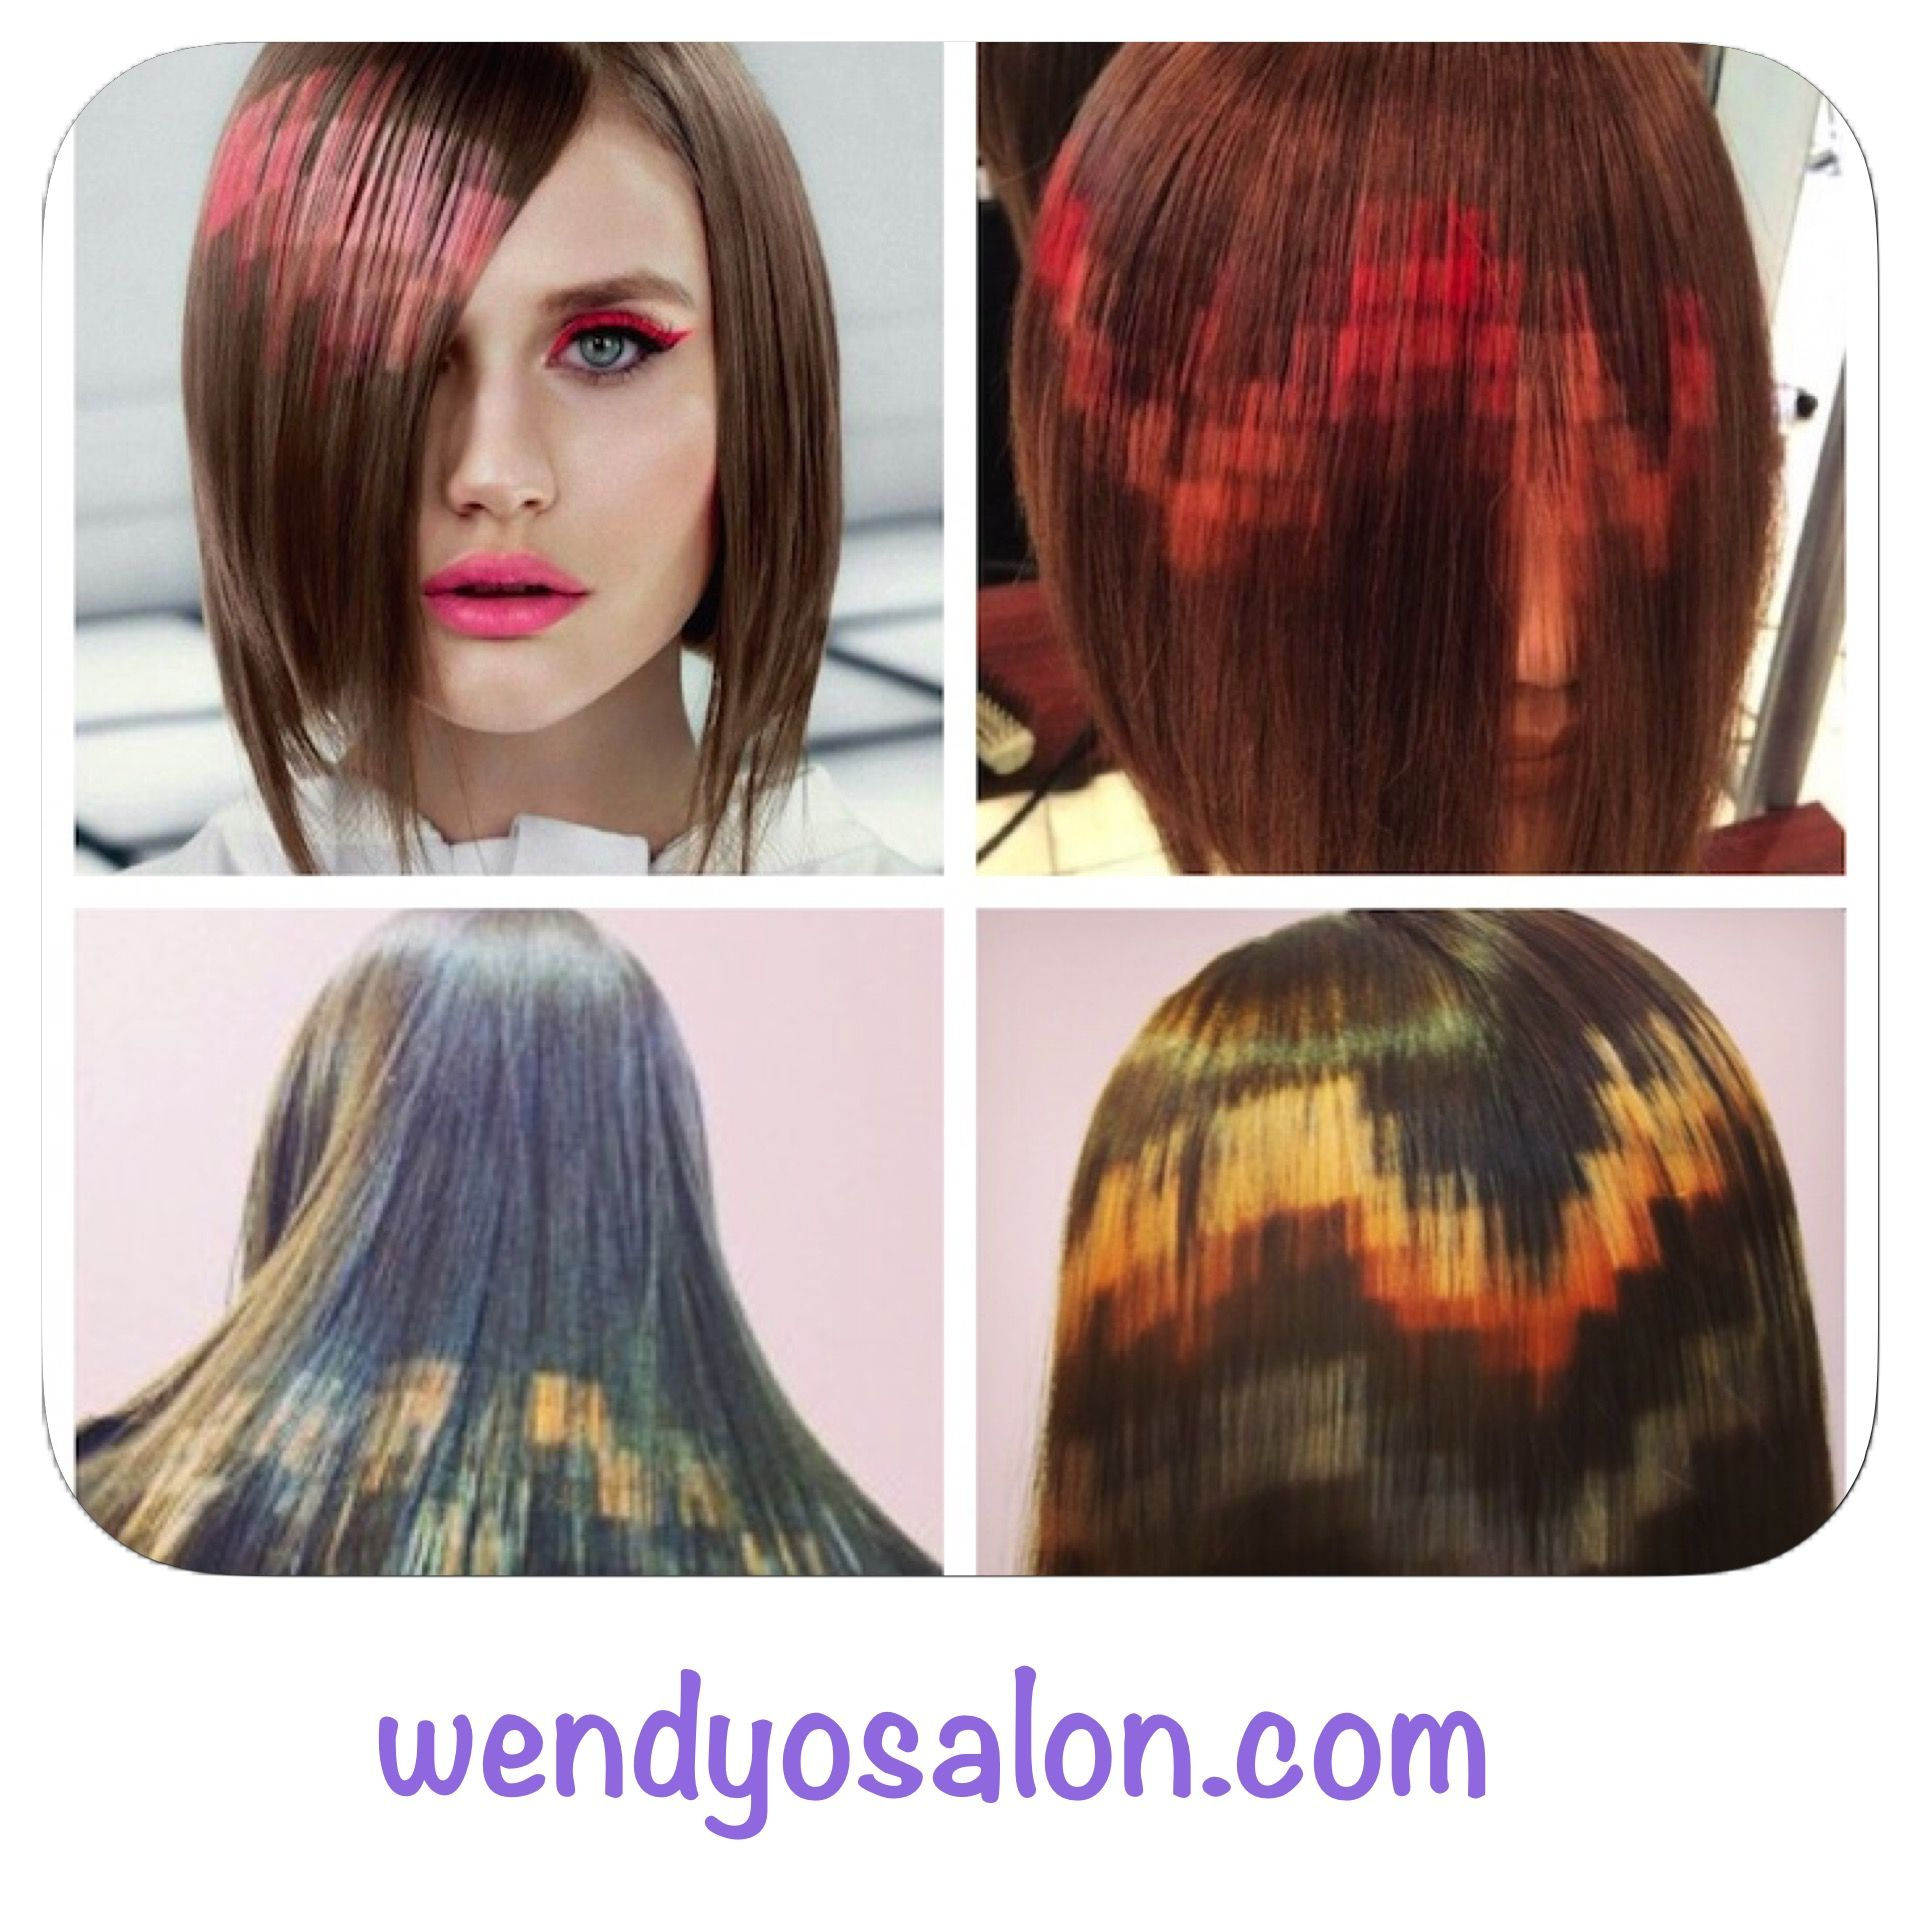 978 263 5442 Pixel Hair Color Style Fashion Newengland